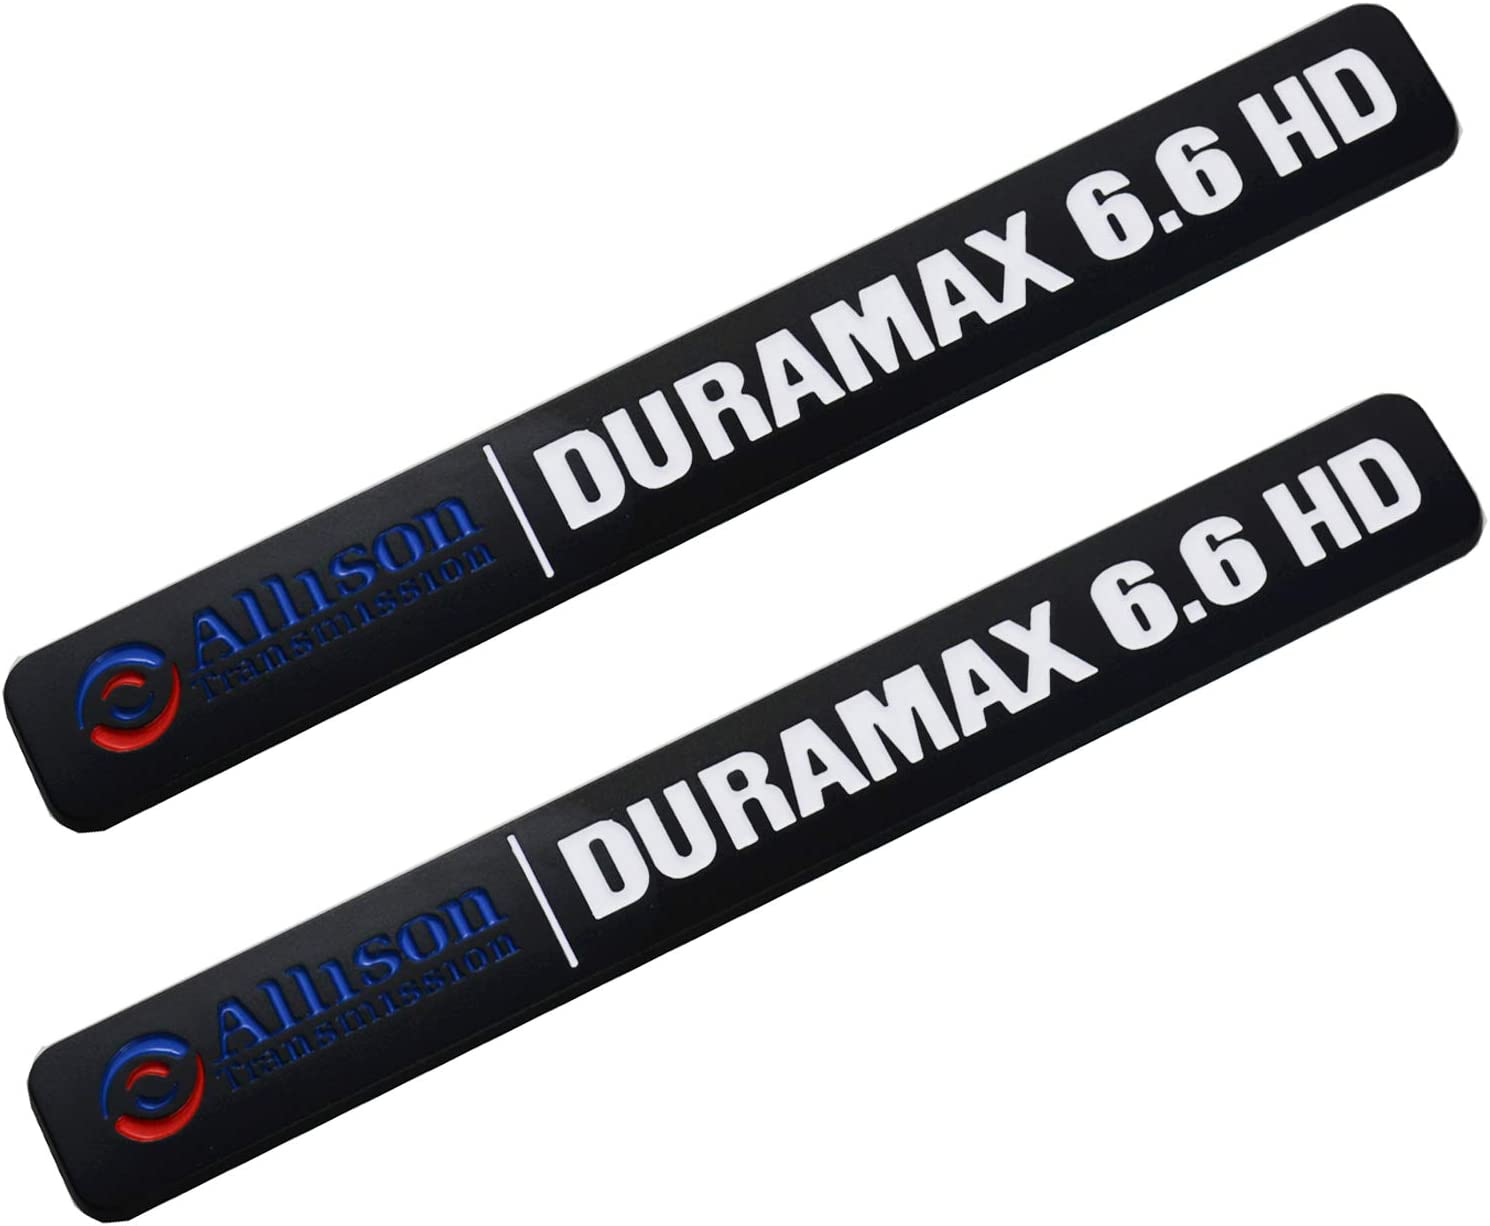 Allison Transmission Duramax 6.6 HD Hood Emblem Pair Set for GM Silverado 2500HD Black White